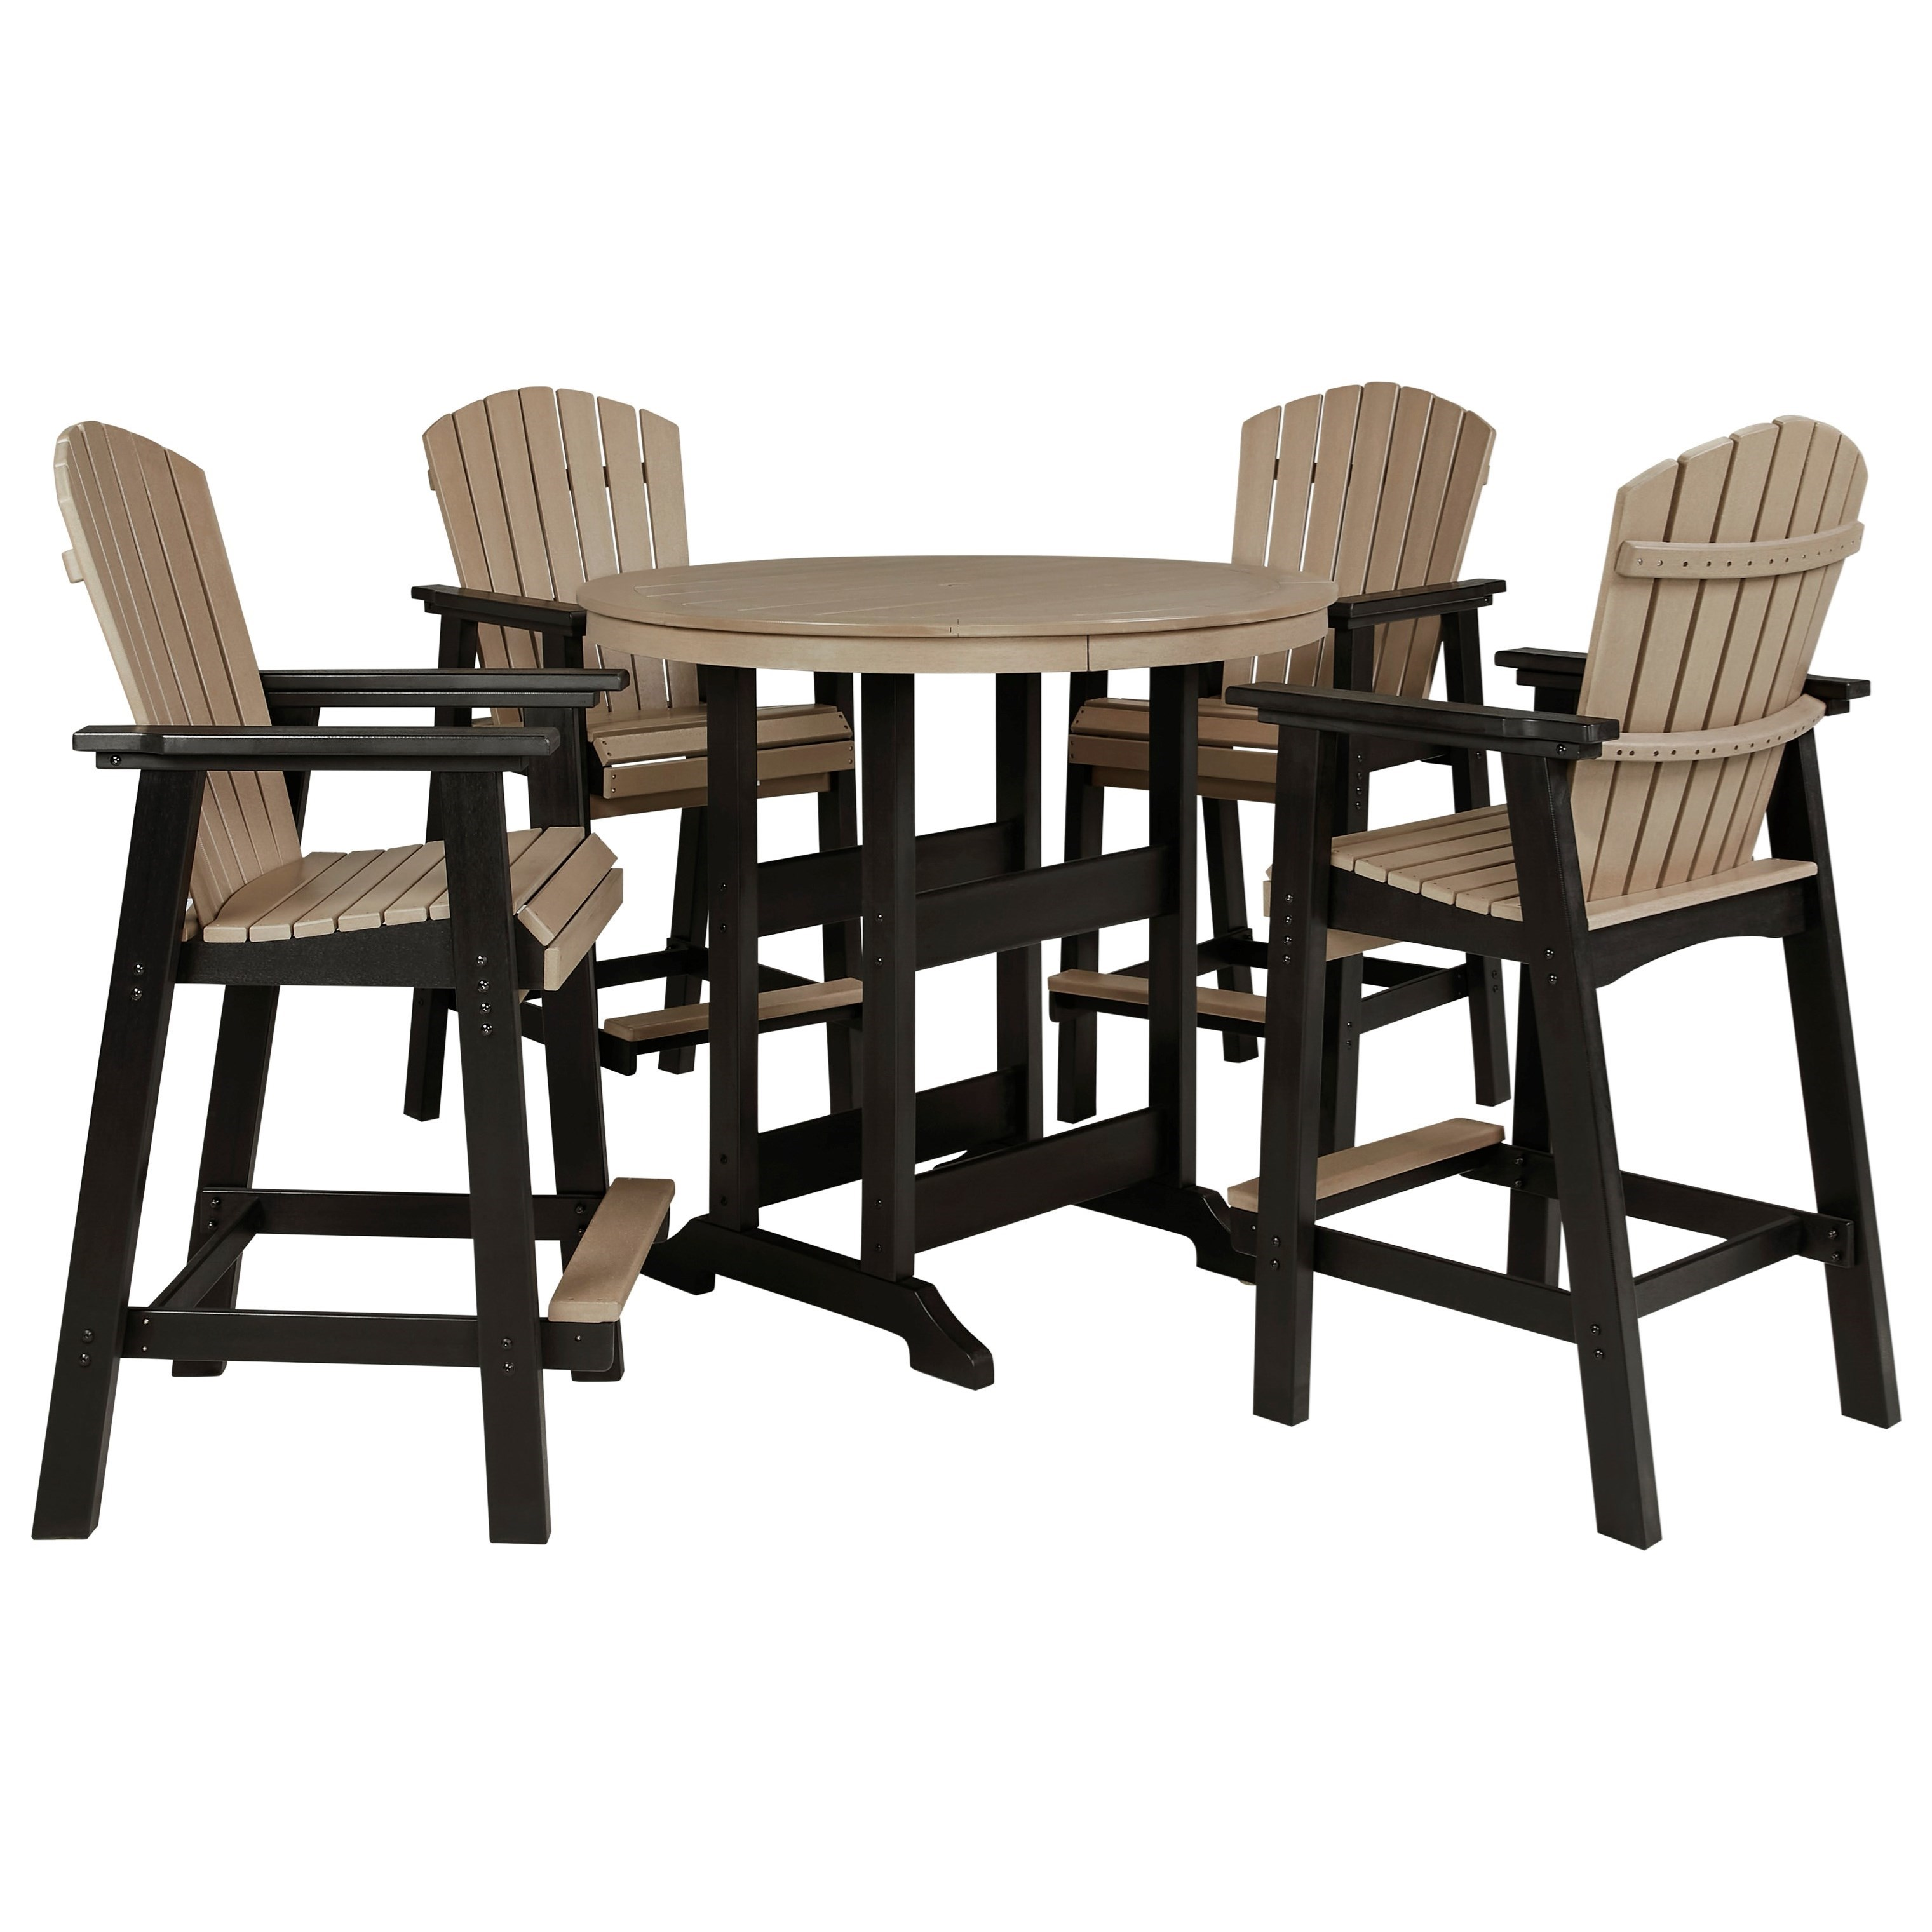 Fairen Trail 5-Piece Round Bar Table Set by Ashley (Signature Design) at Johnny Janosik